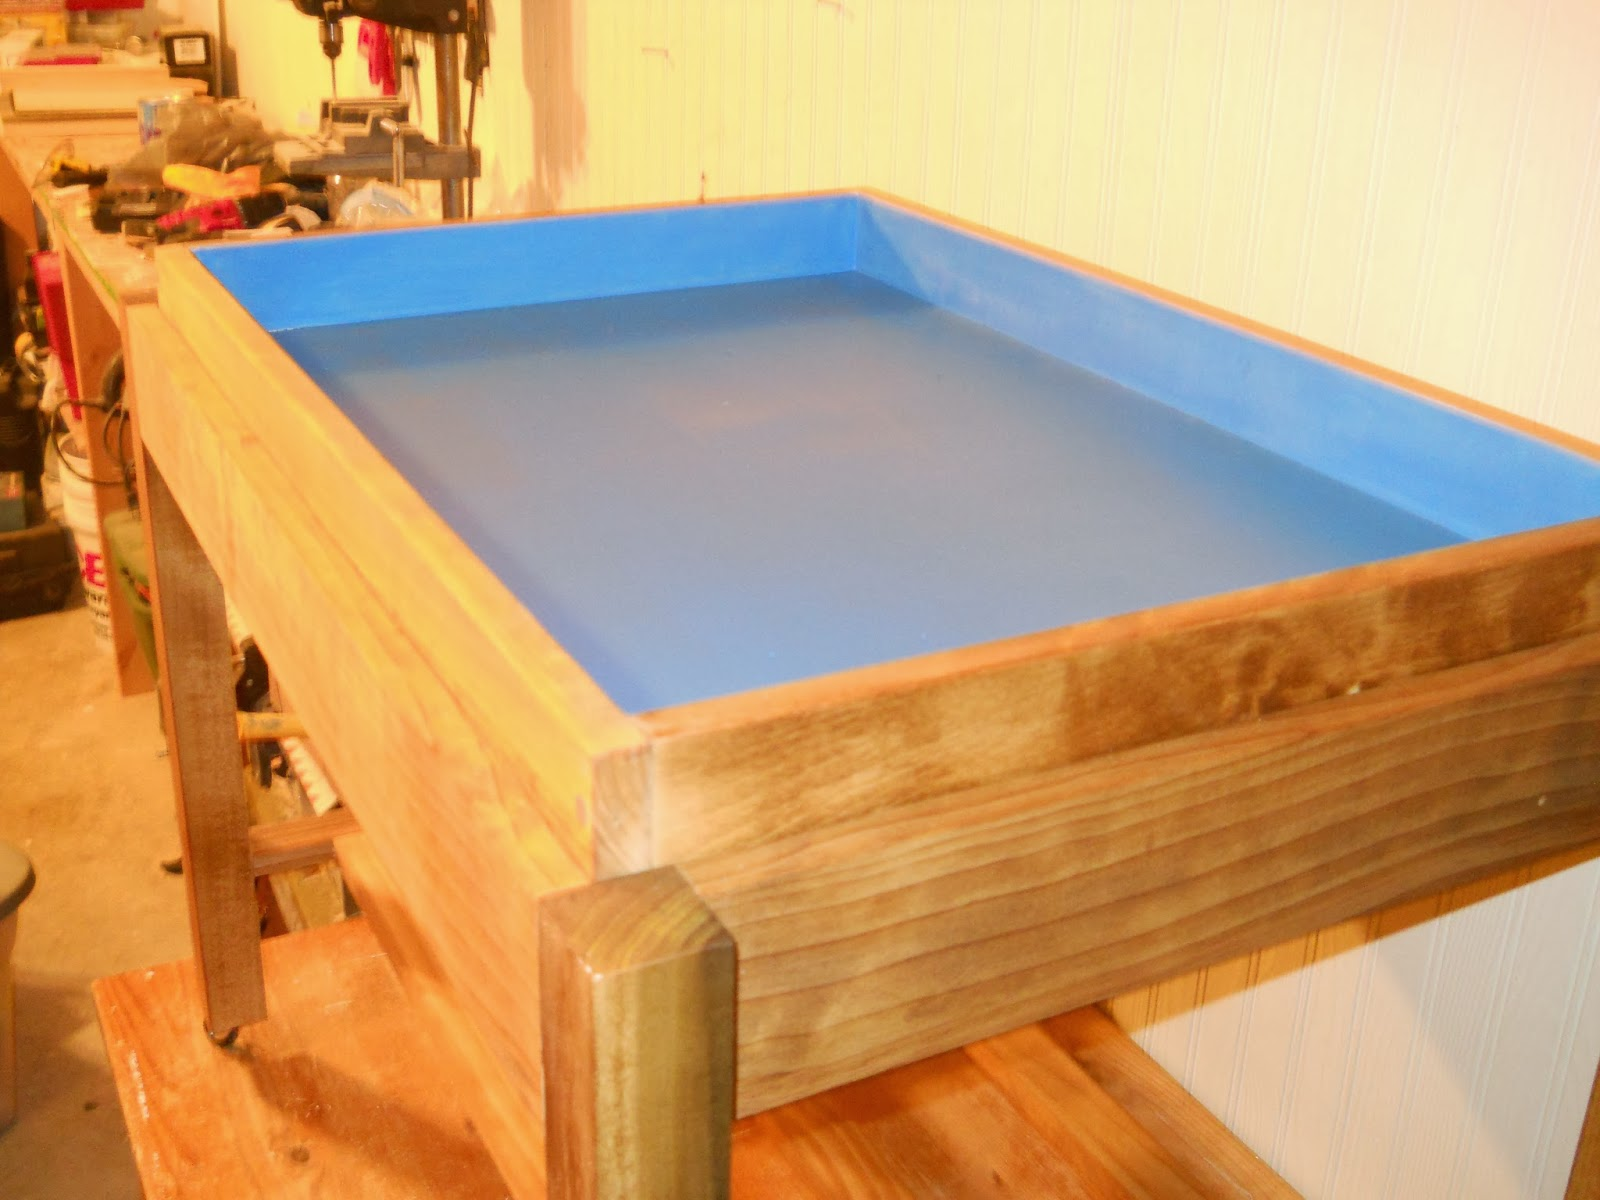 Tim Misiora Woodworking: Children's Sand Therapy Table